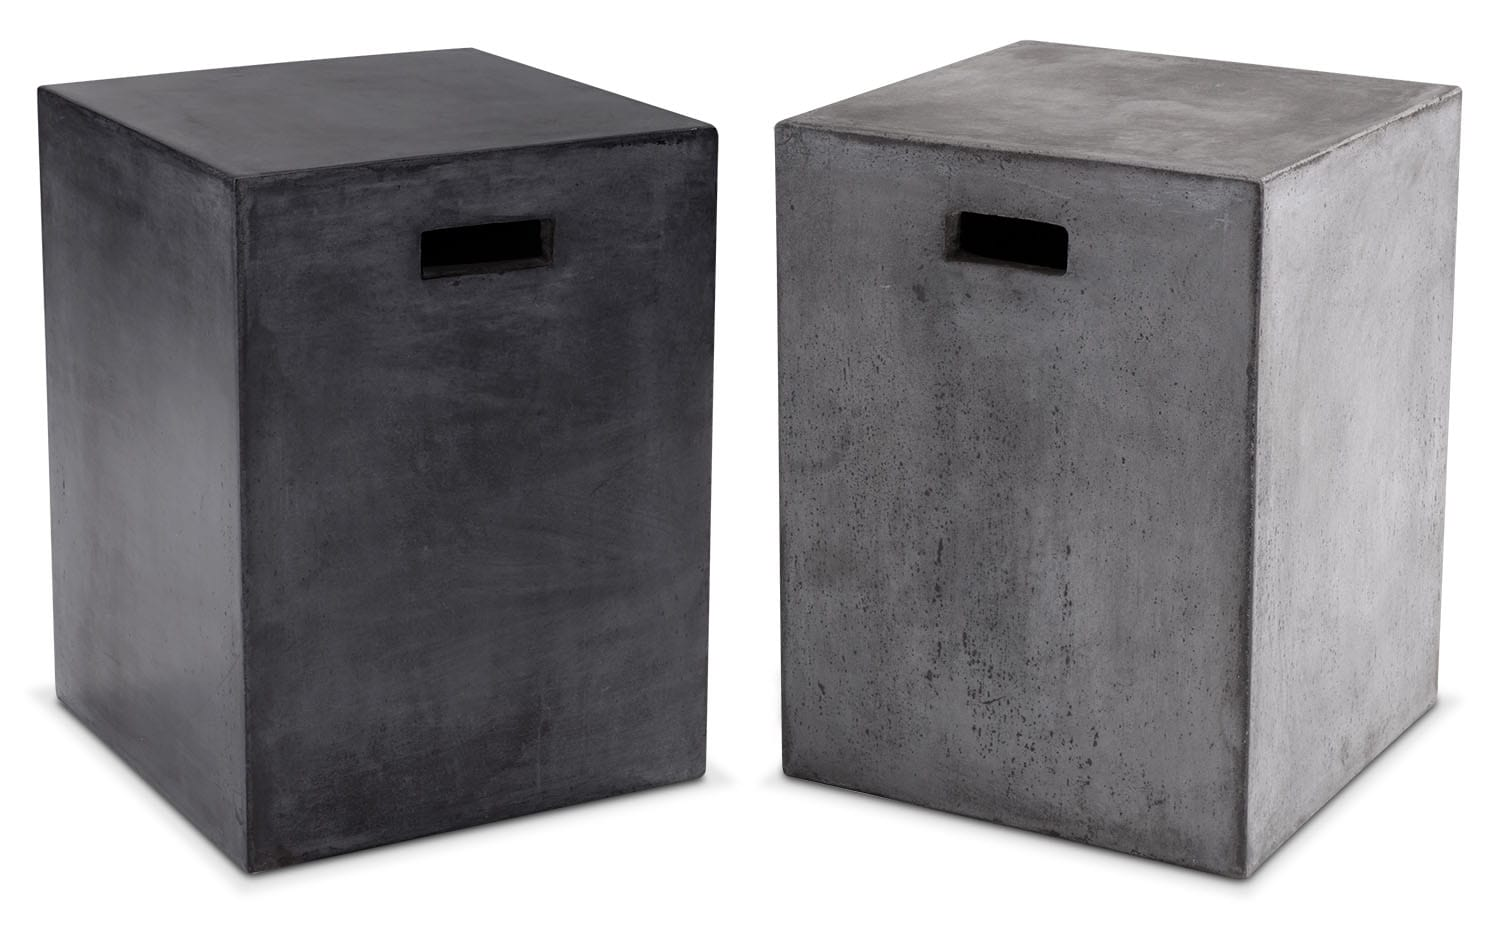 The Block Concrete End Table Collection